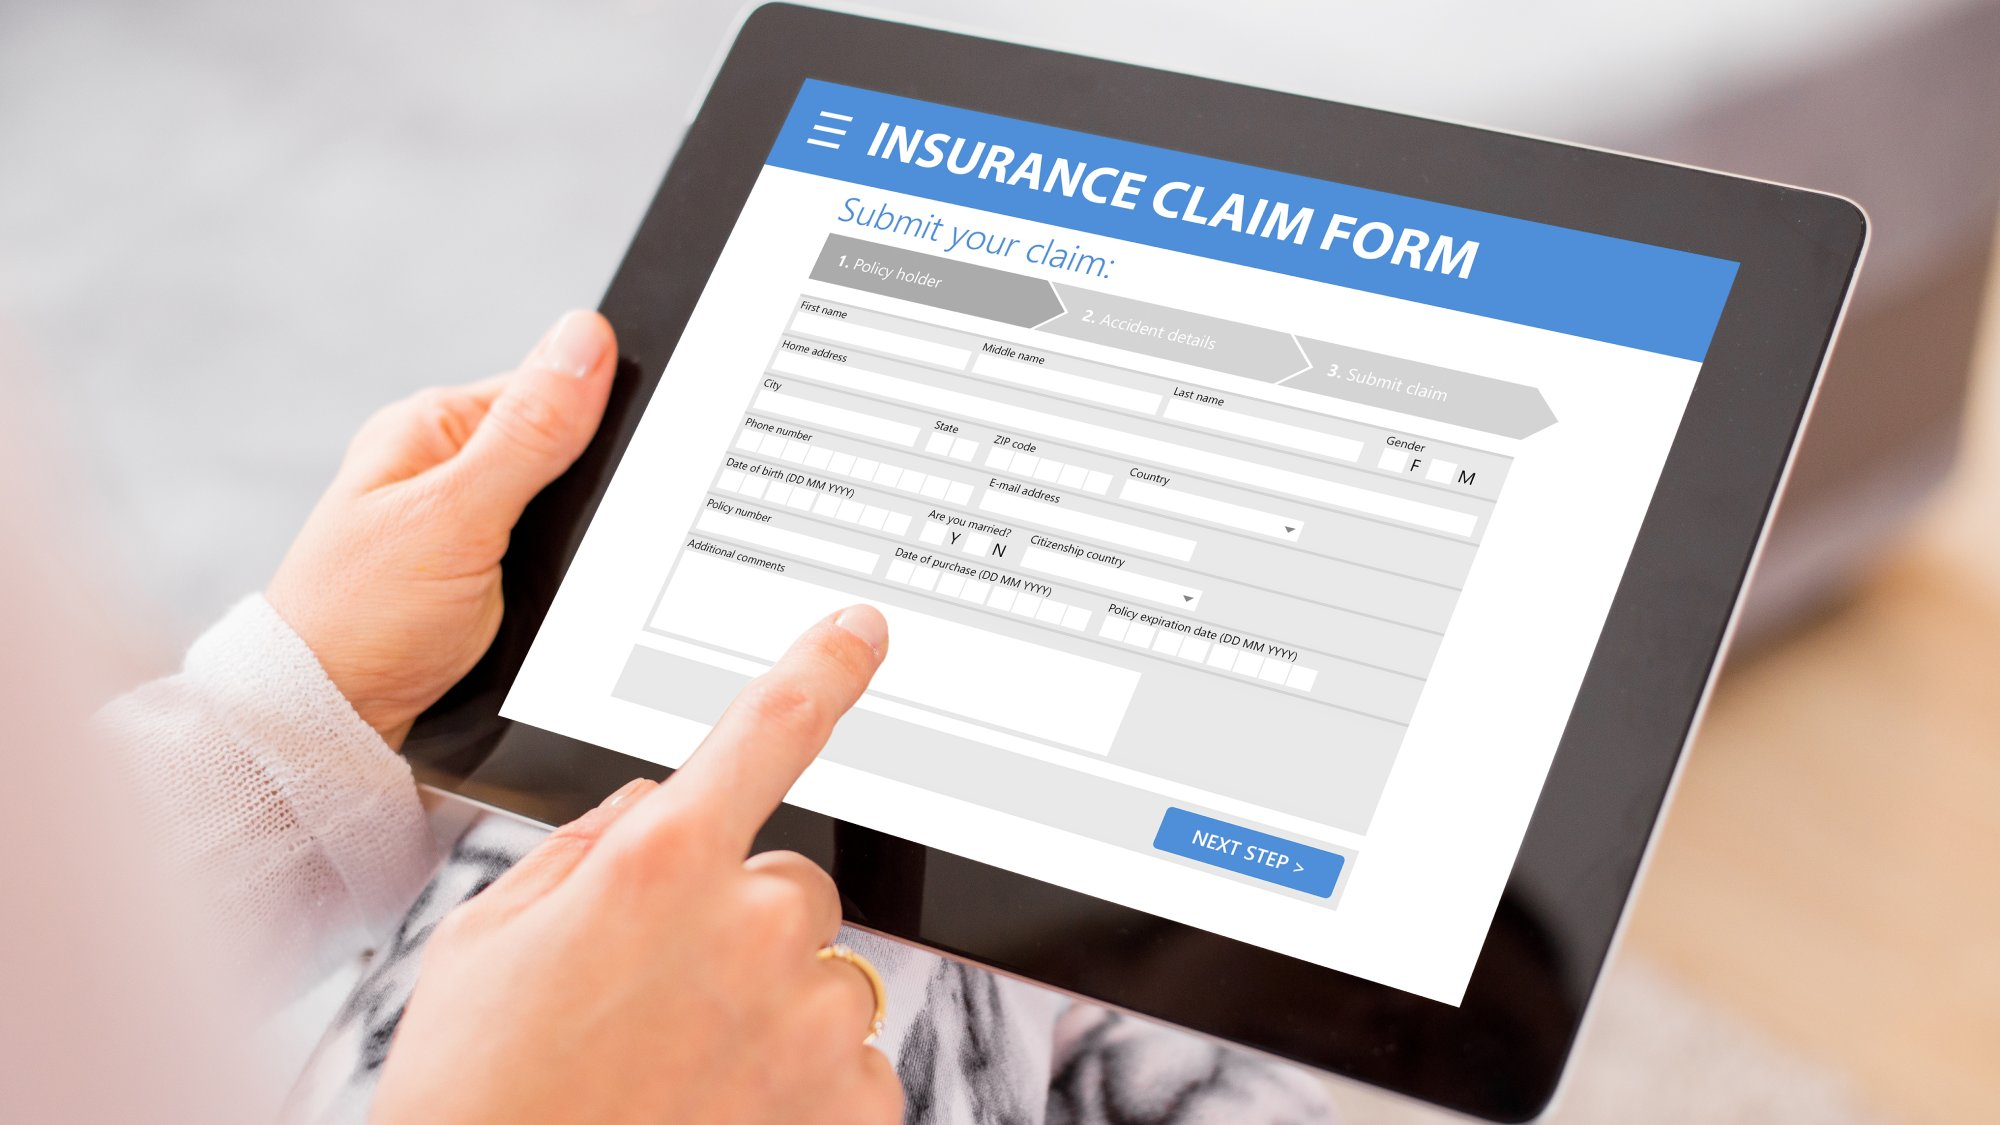 With in4mo's building claim software solution, insurance companies can process related claims a lot faster and smoother.